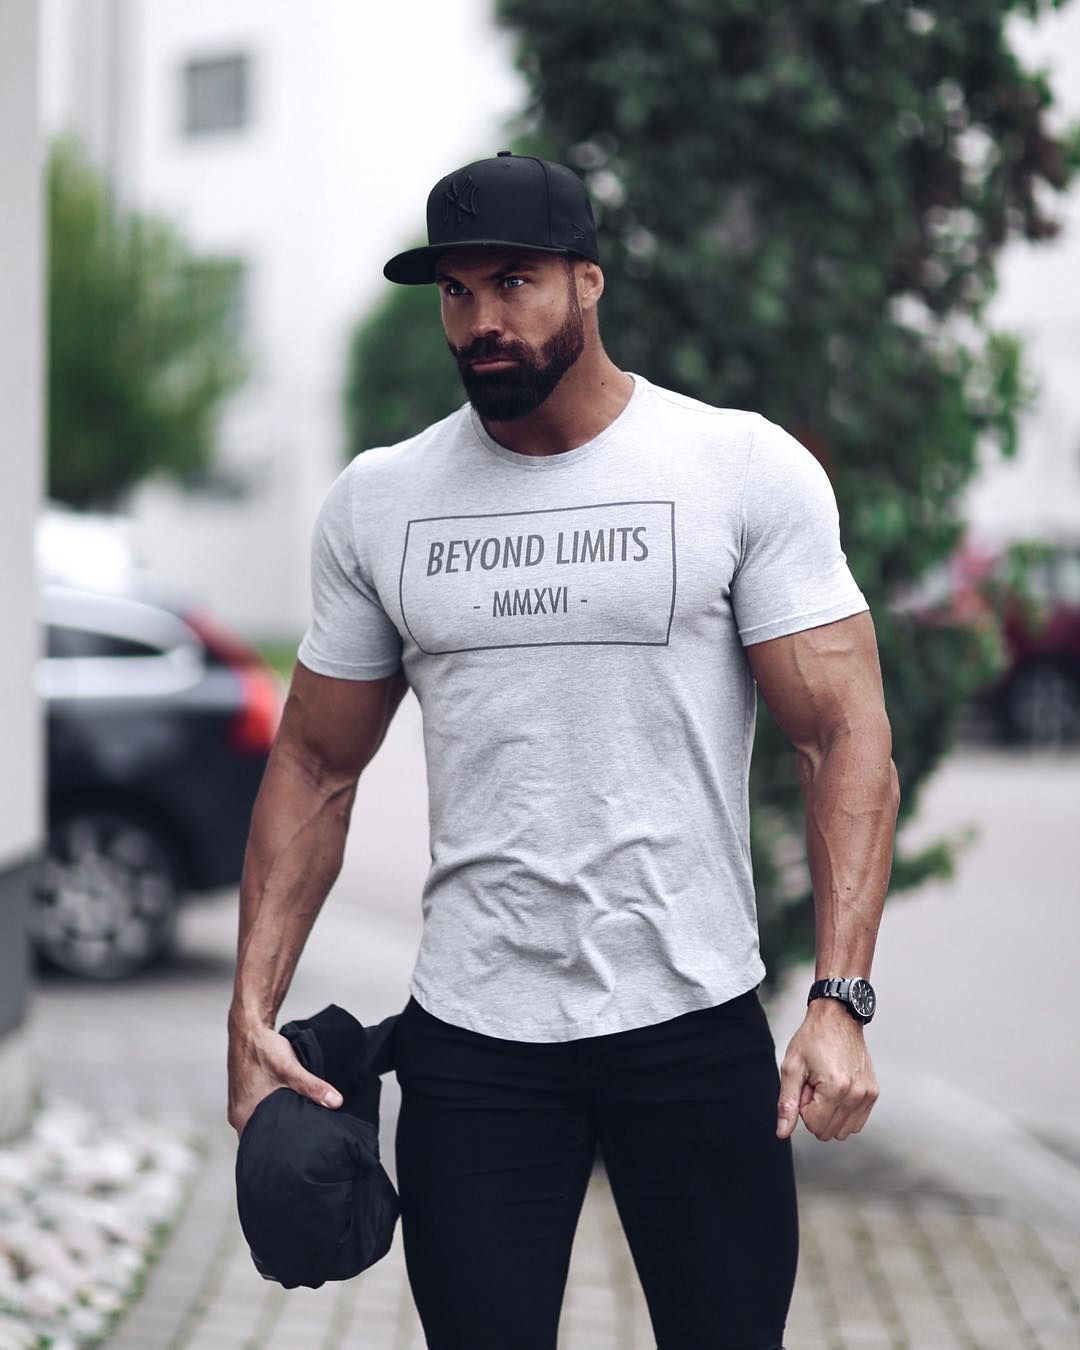 "ANDREAS LINDER on Instagram: ""Gymwear meets streetwear. This week they have  20%OFF @beyondlimitscom #beyondlimits #dontbeaverage"""